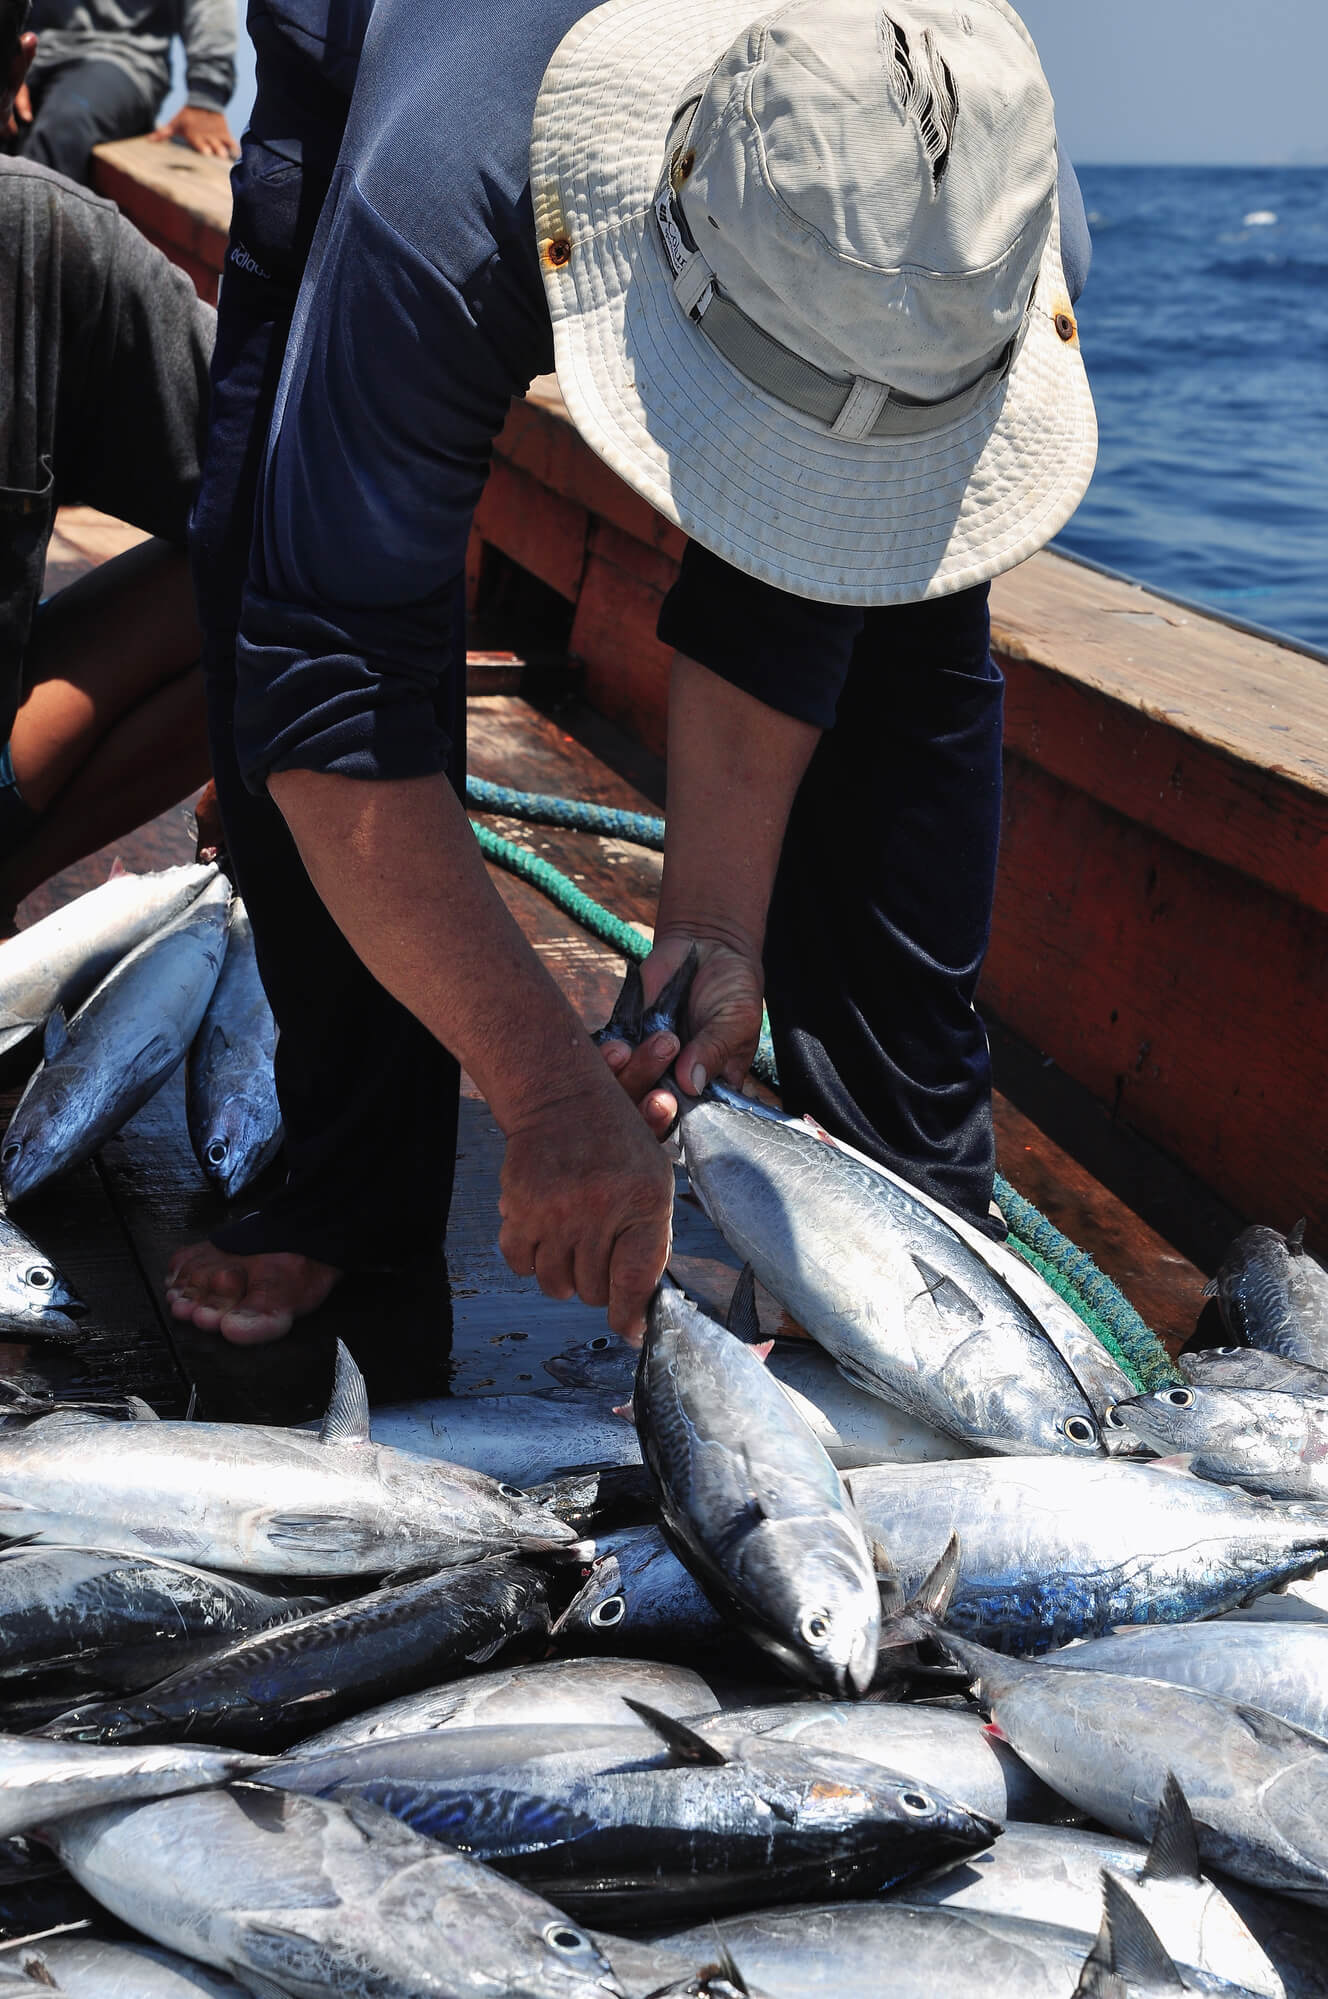 Bumper catch of tuna fish - commercial fishing